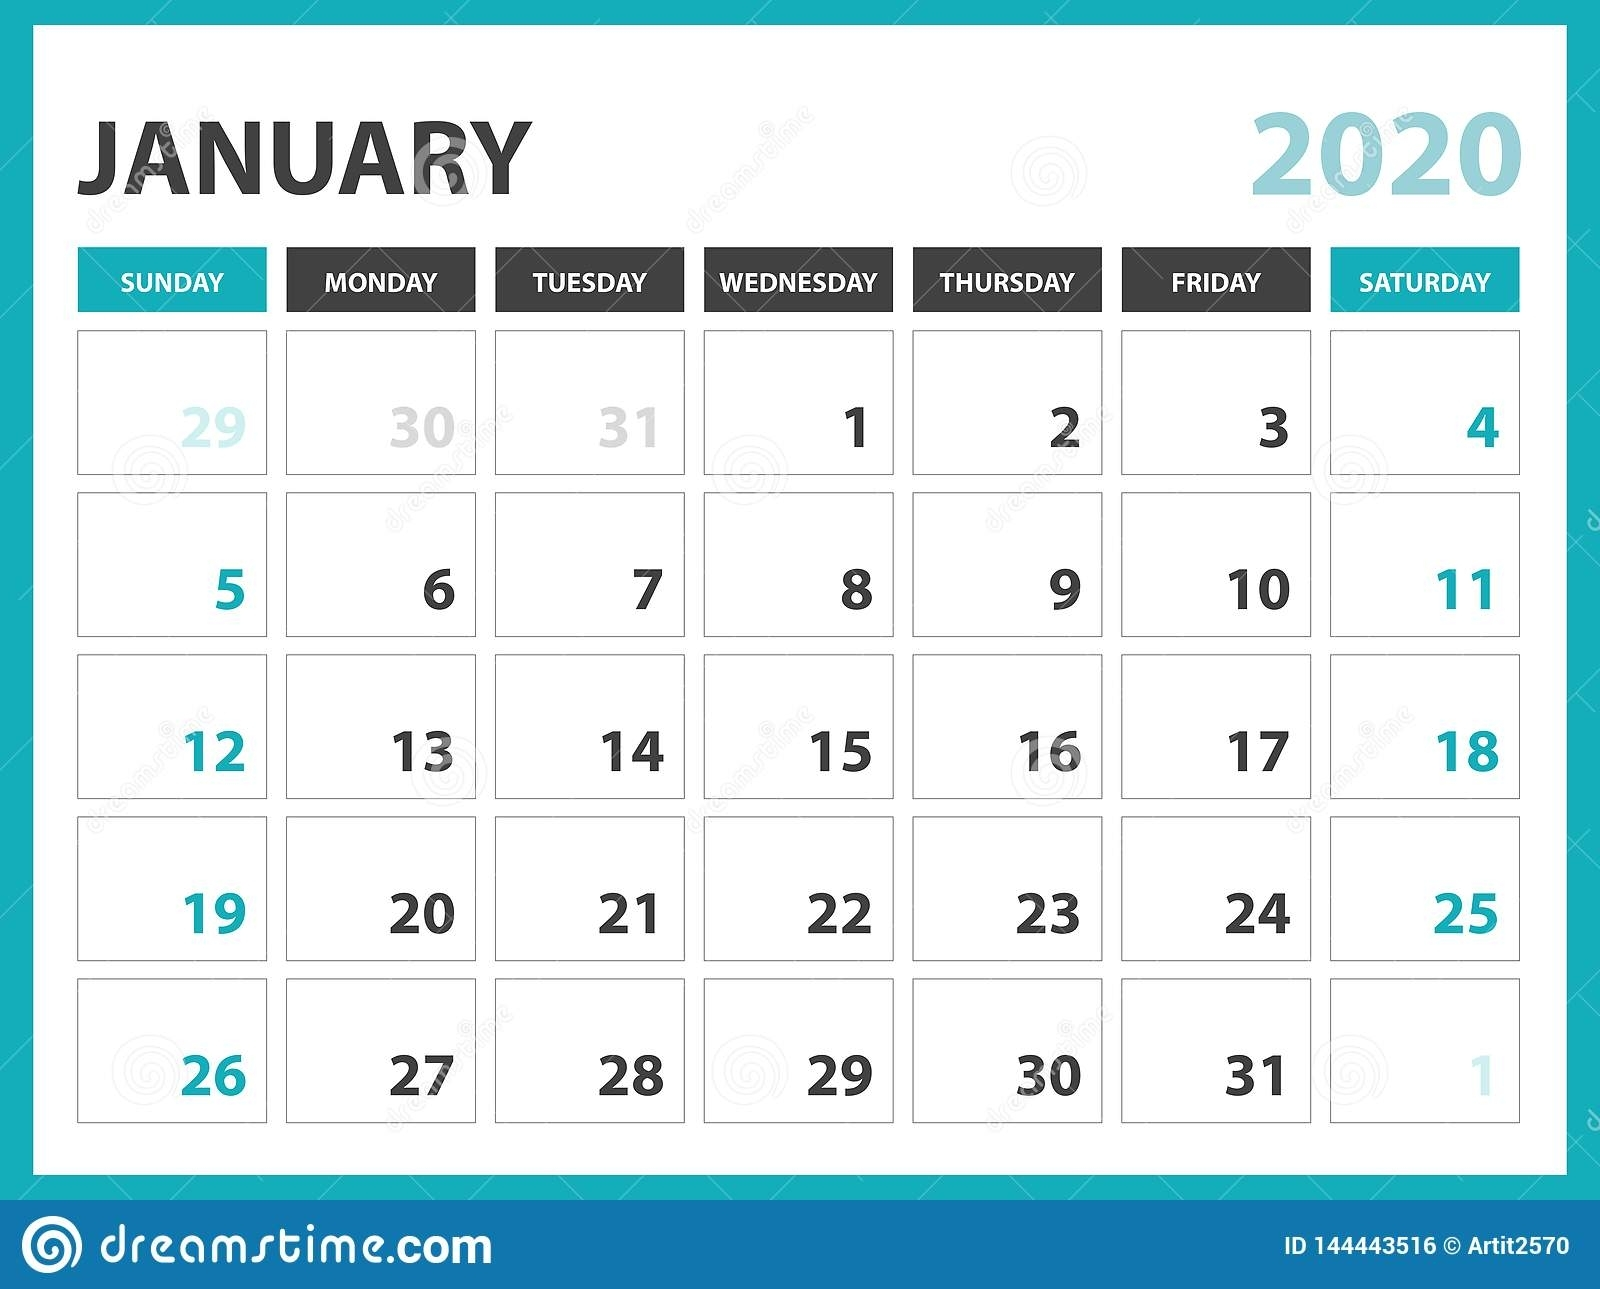 Desk Calendar Layout Size 8 X 6 Inch, January 2020 Calendar Template with Pretty Printable Calendar 2020 Without Download